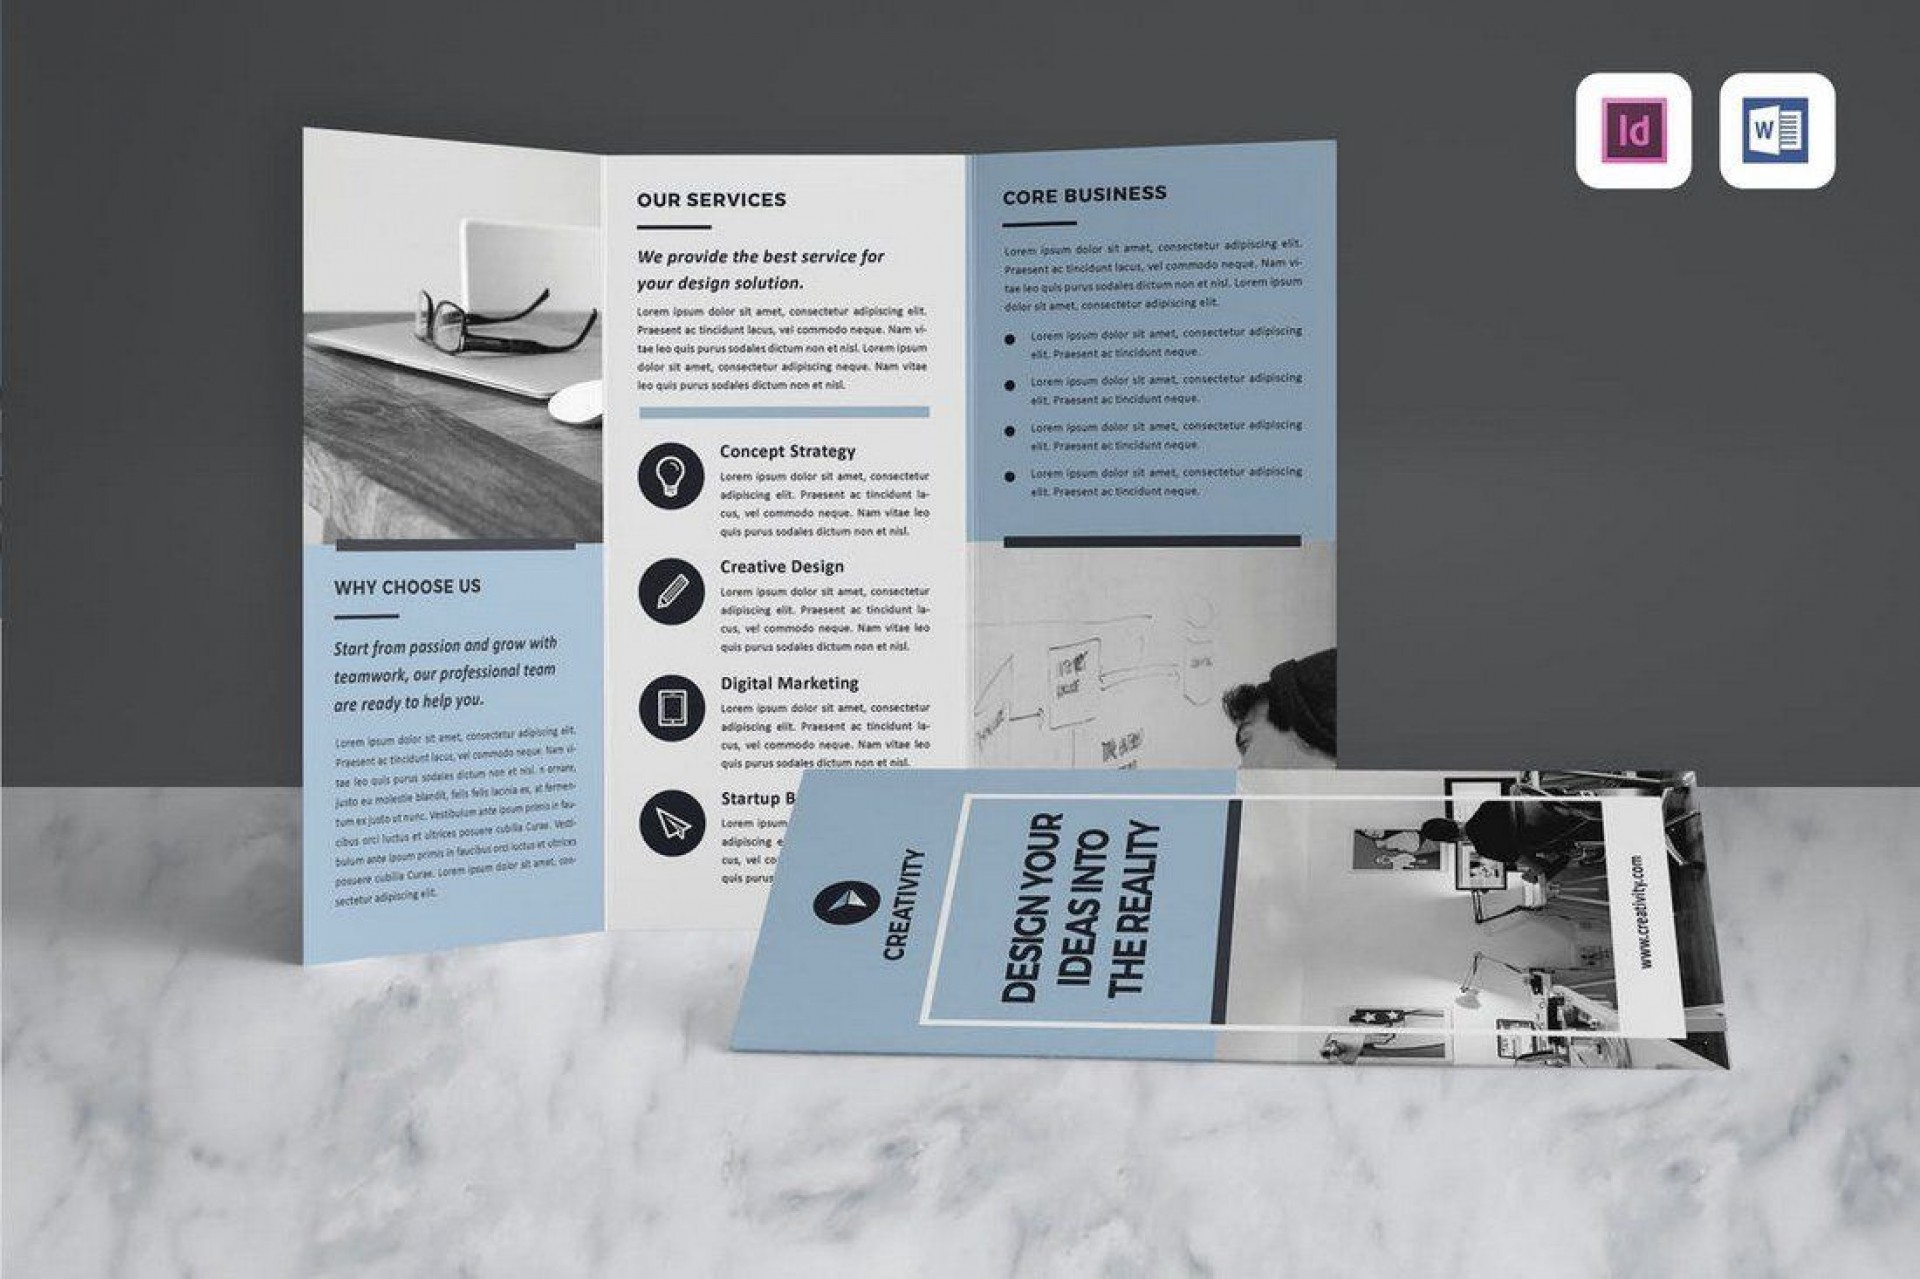 009 Unforgettable Indesign Trifold Brochure Template Highest Clarity  Tri Fold A4 Bi Free Download1920